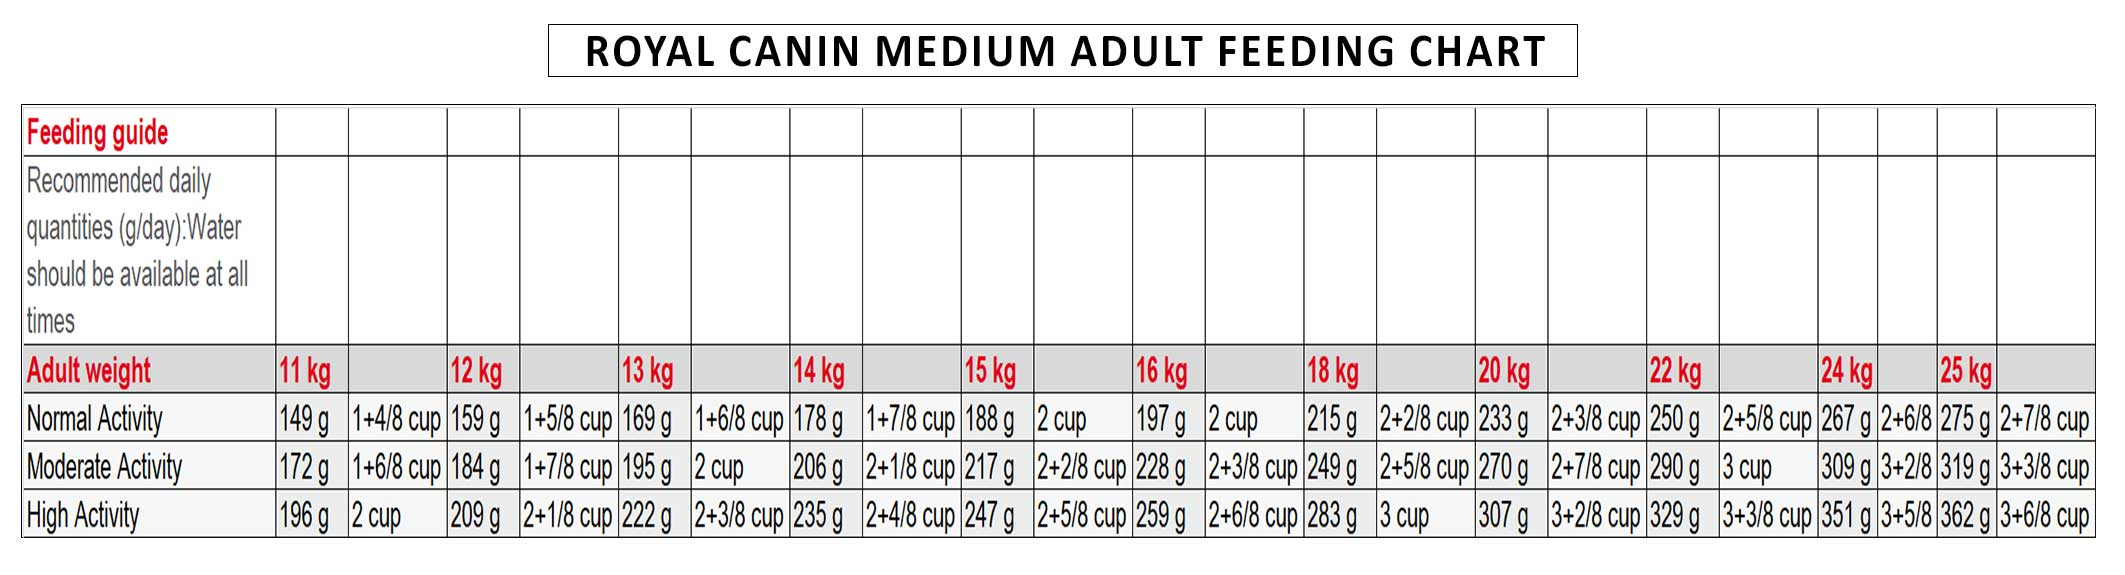 Royal-canin-Medium-Adult-feeding-chart